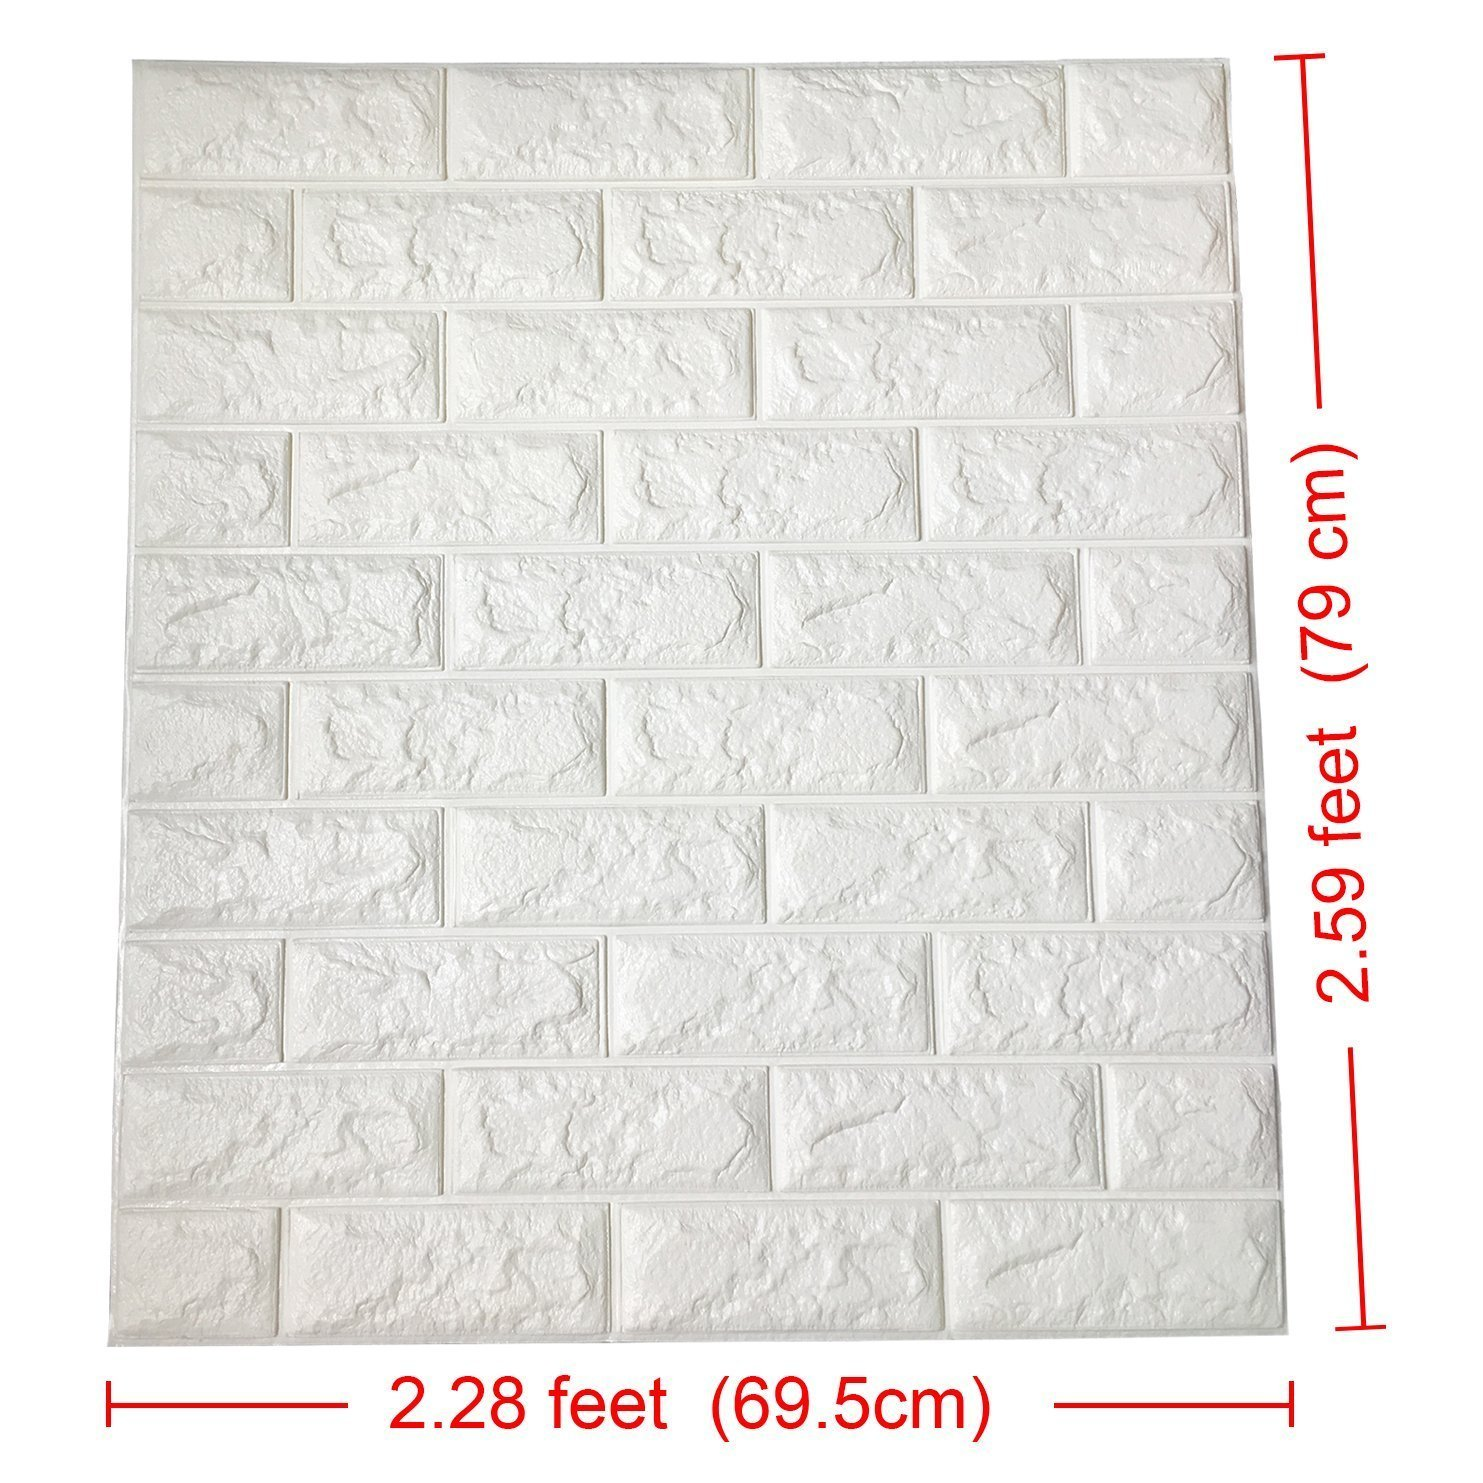 (5PCS, White)3D Brick Wall Stickers Self-adhesive Panel Decal PE Wallpaper